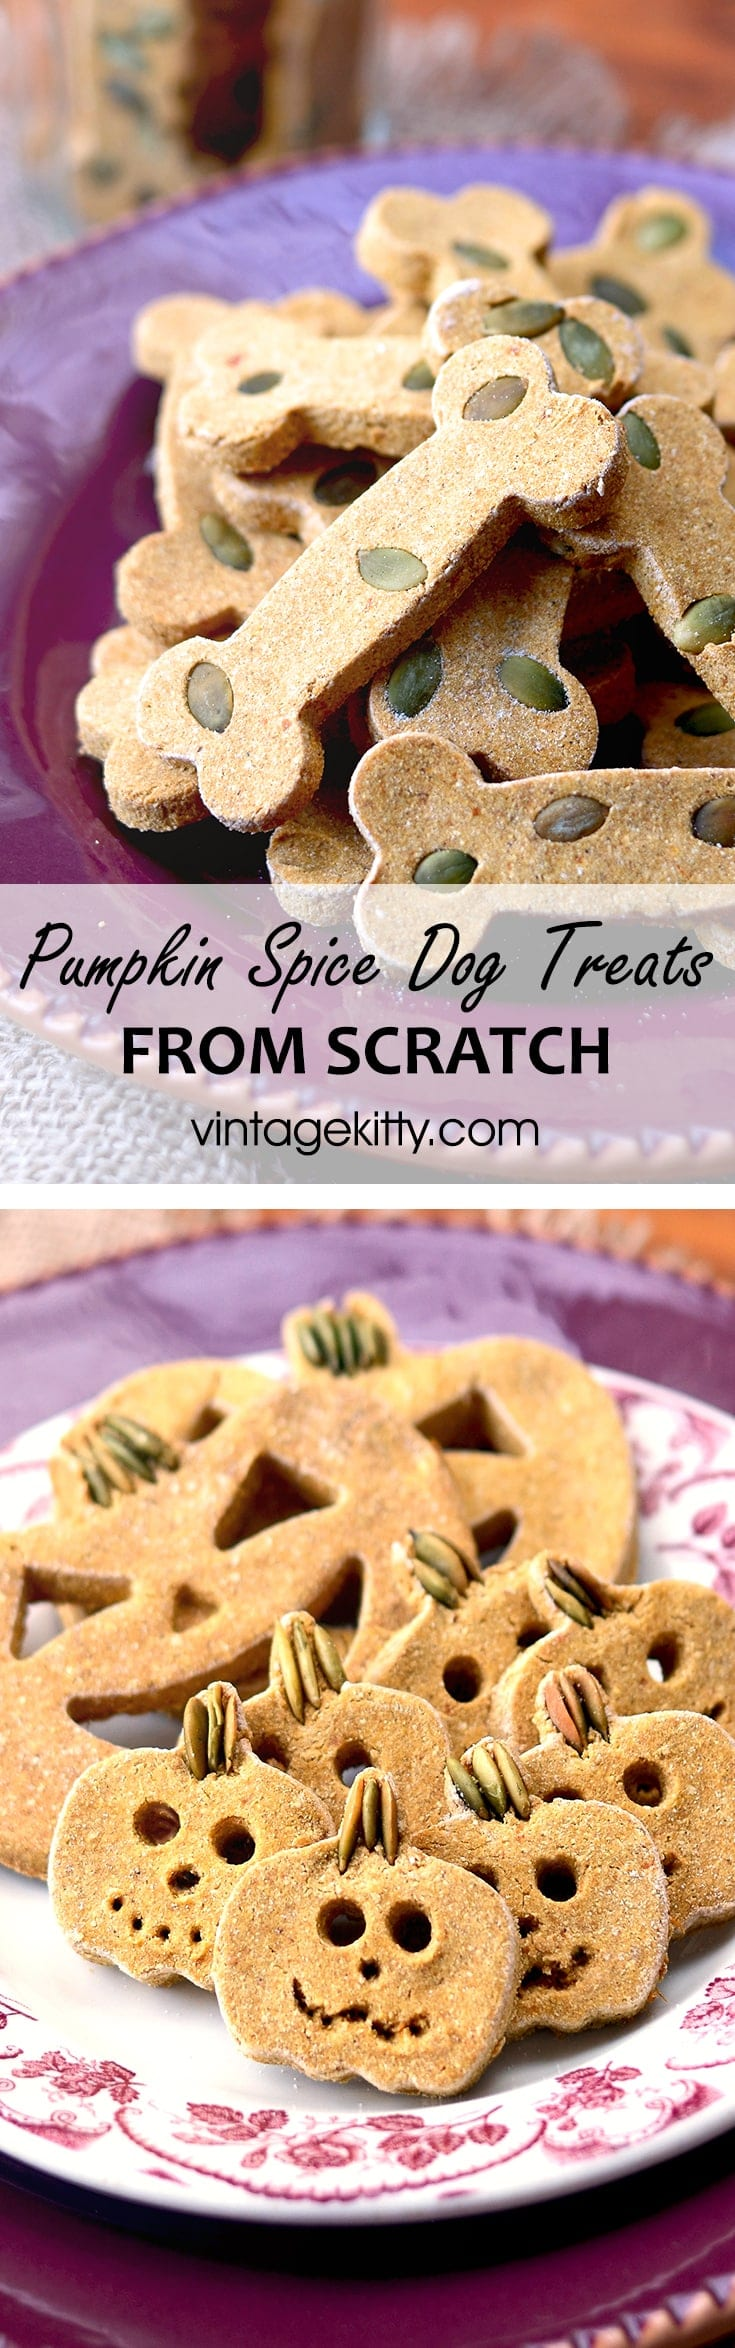 Pumpkin Spice Dog Treats Pin - Pumpkin Spice Dog Treats     ***Gluten Free!***